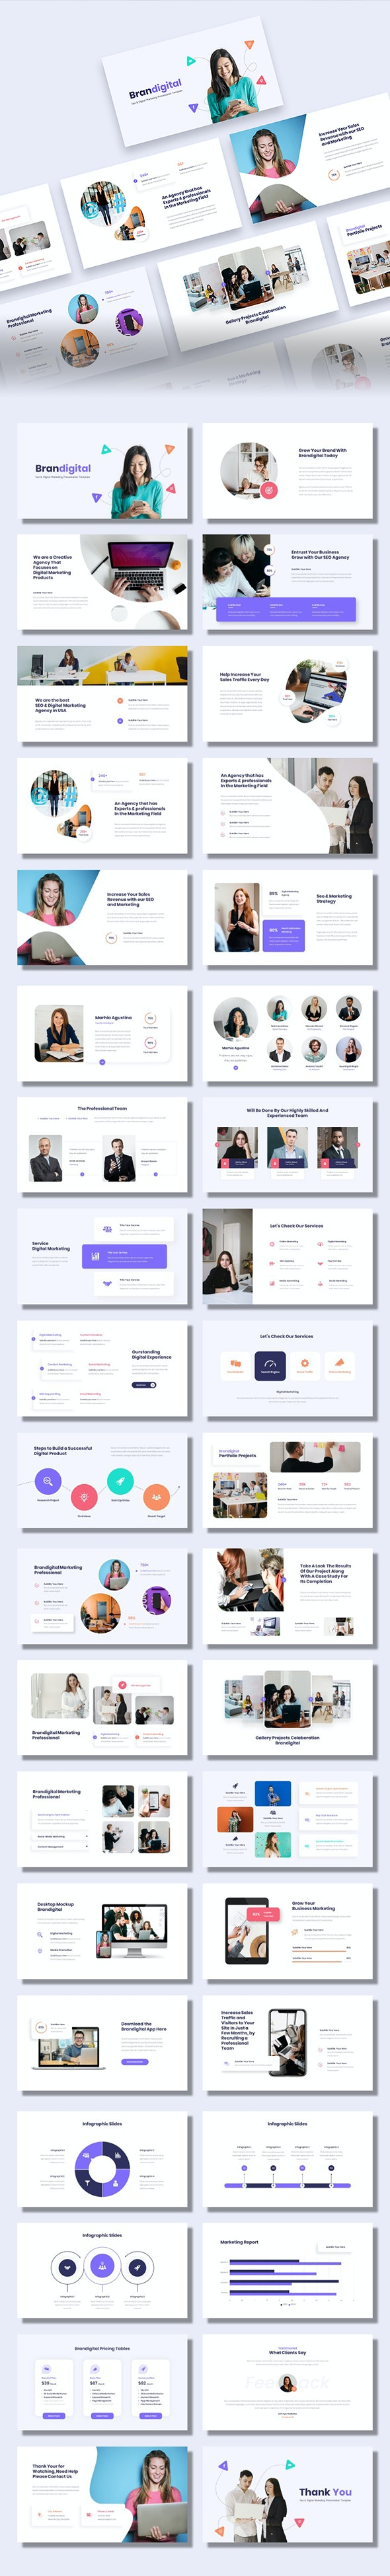 Brandigital - SEO & Digital Marketing Agency Google Slides Template - Google Slides Presentation Templates